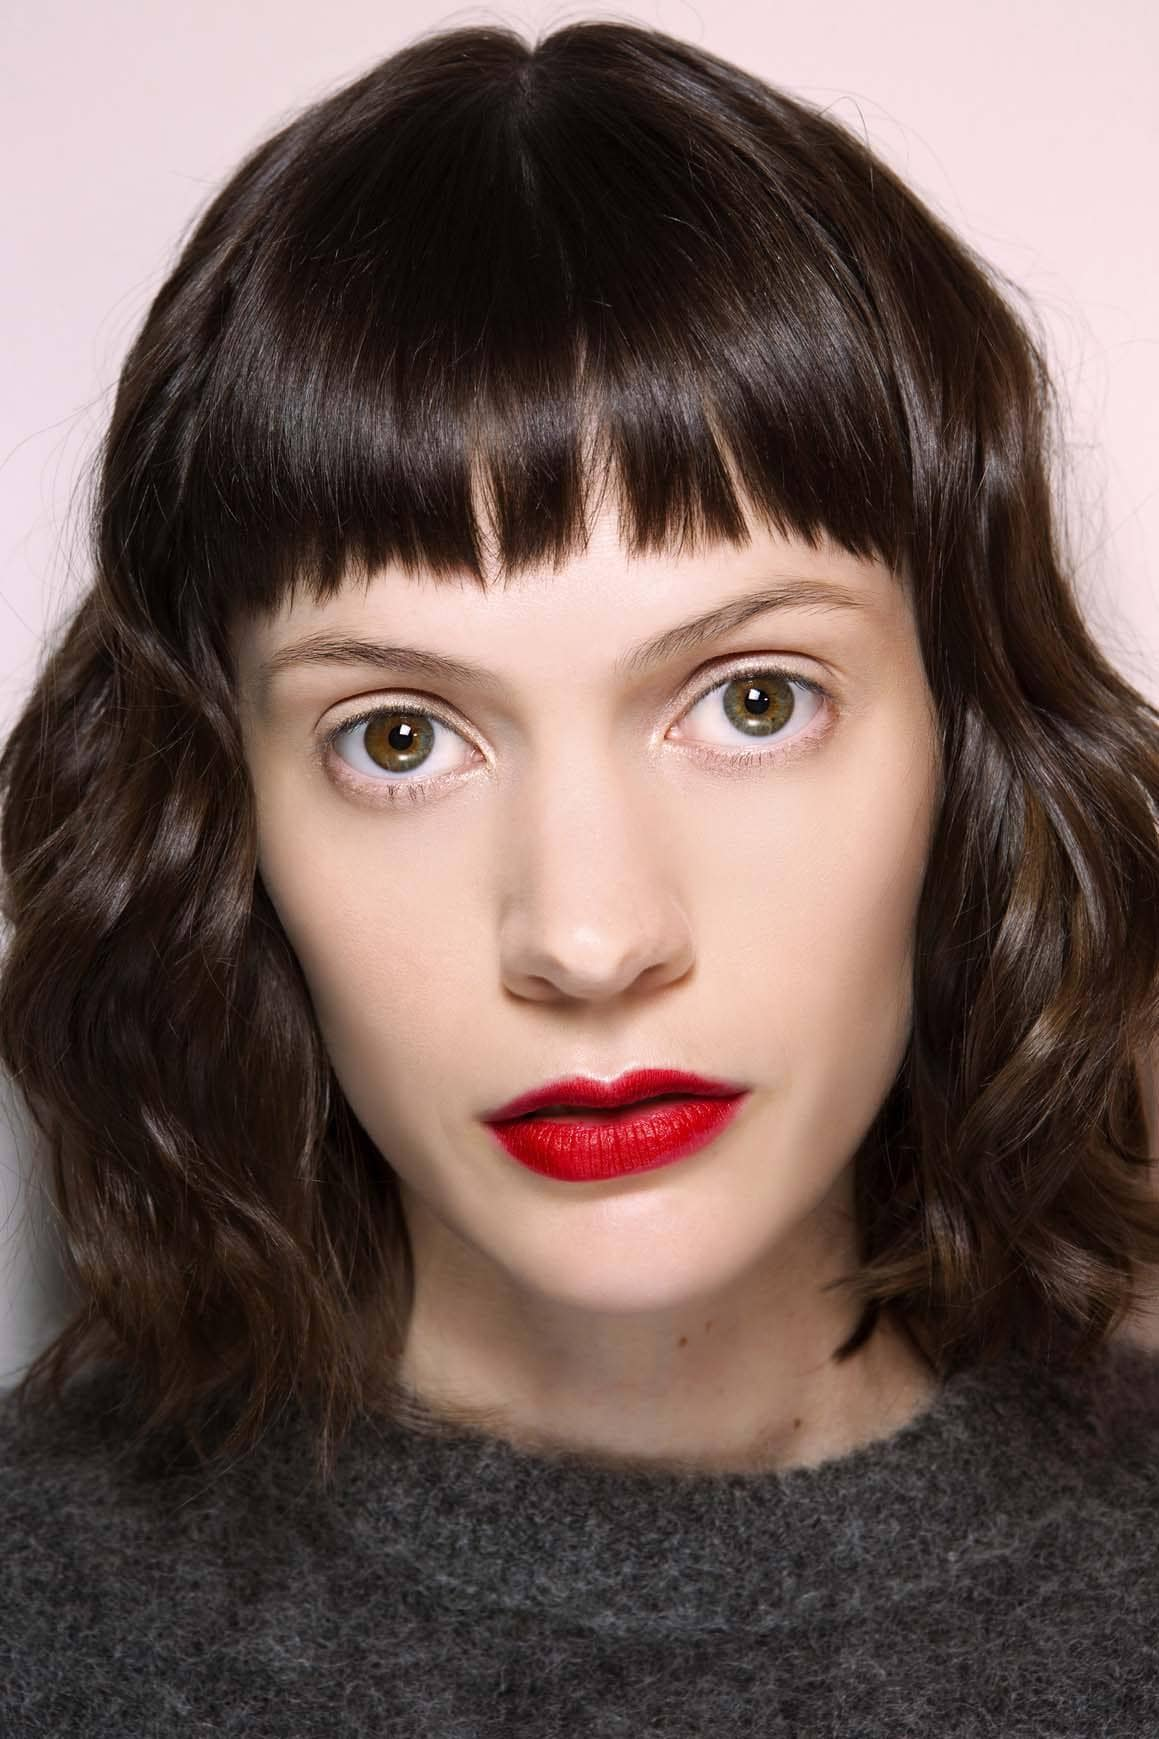 Short bangs: Woman with dark brown glossy wavy hair with micro fringe and red lipstick.